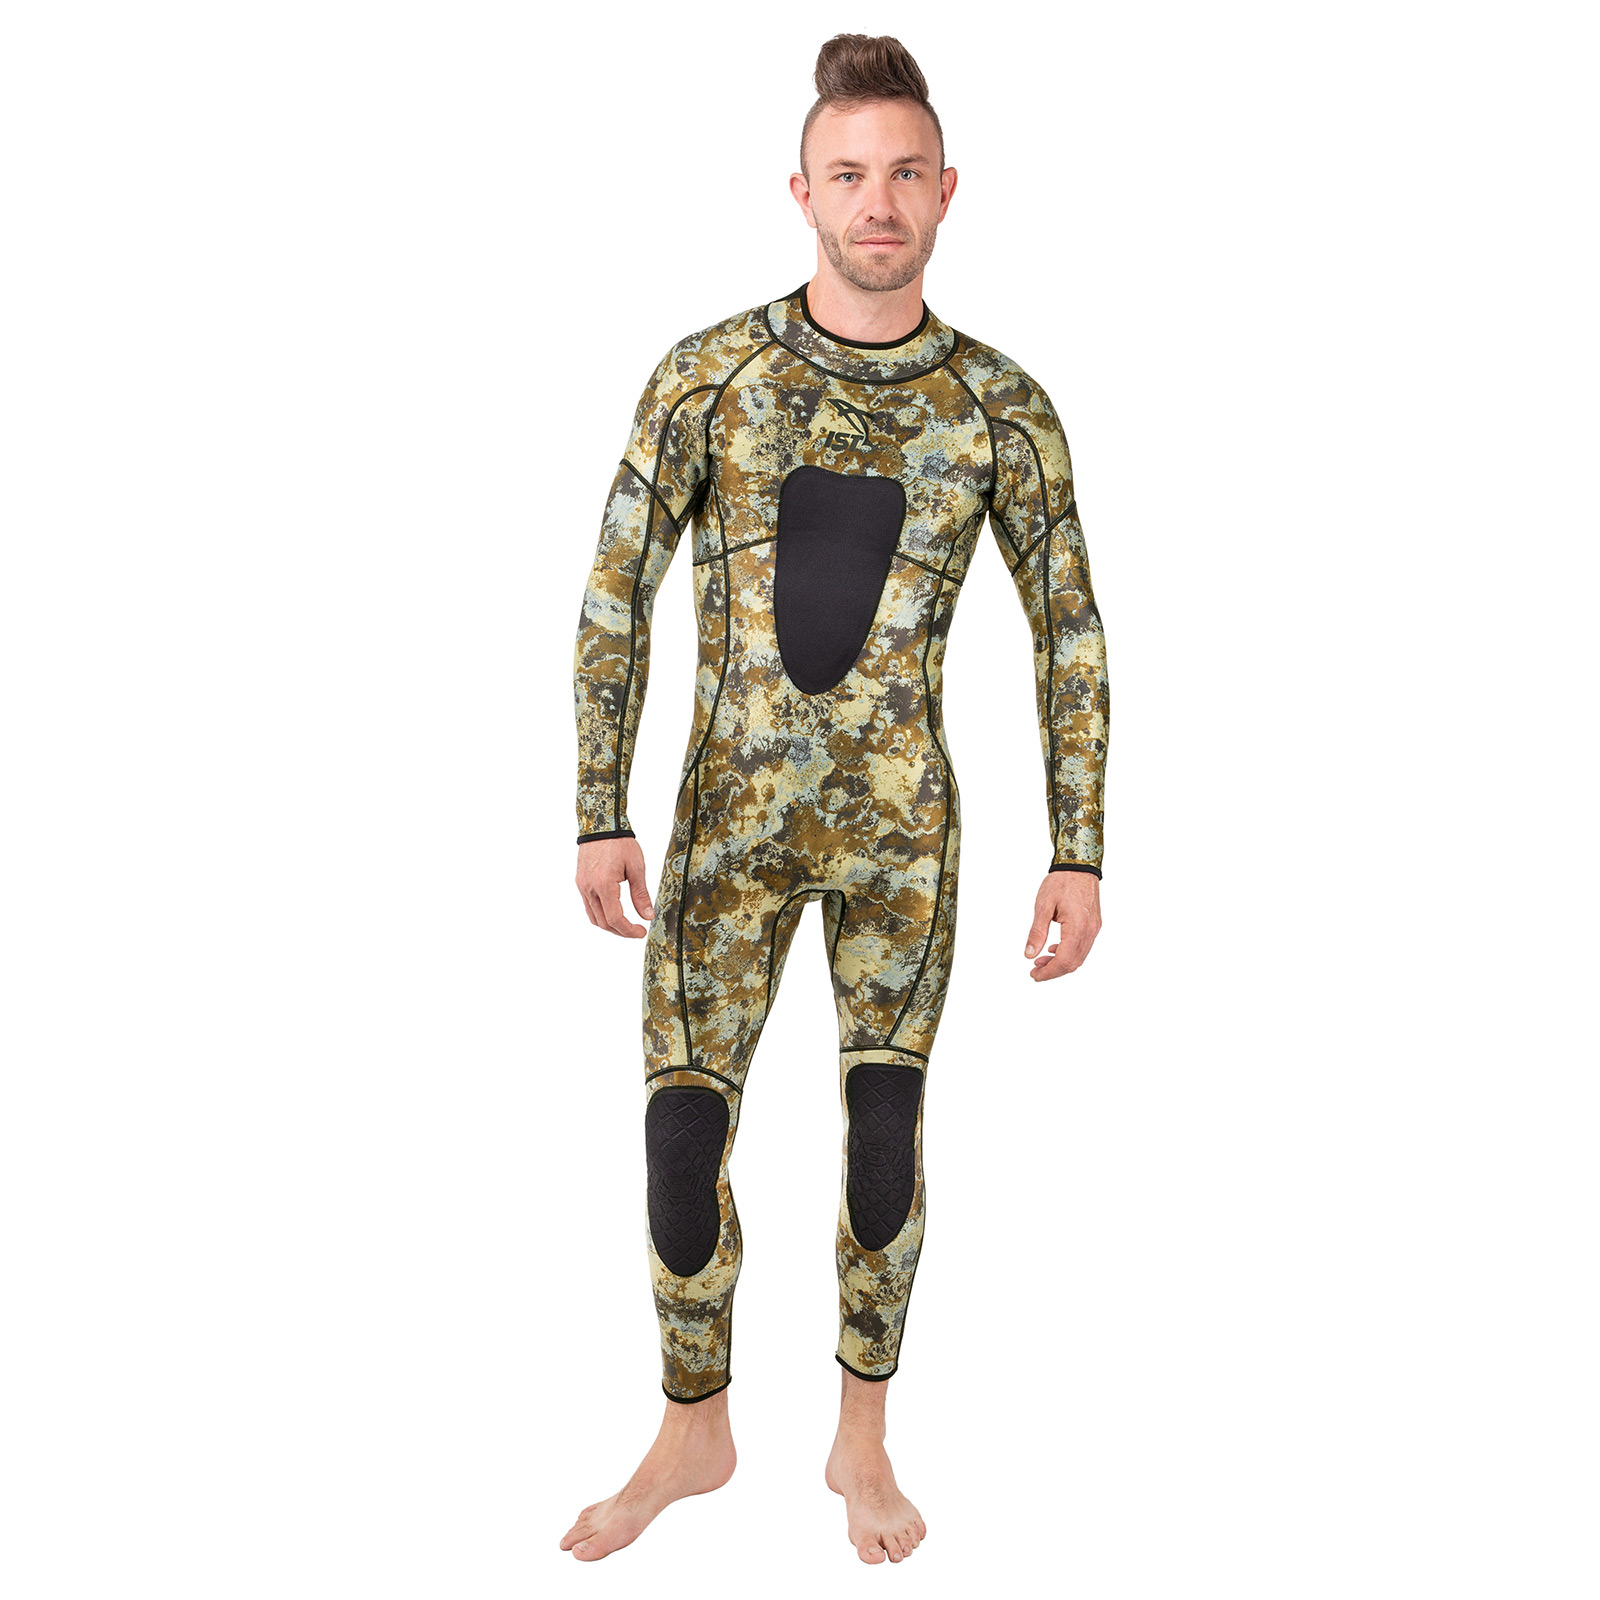 PURiGUARD 3mm Camo Jumpsuit for hunting in warm water